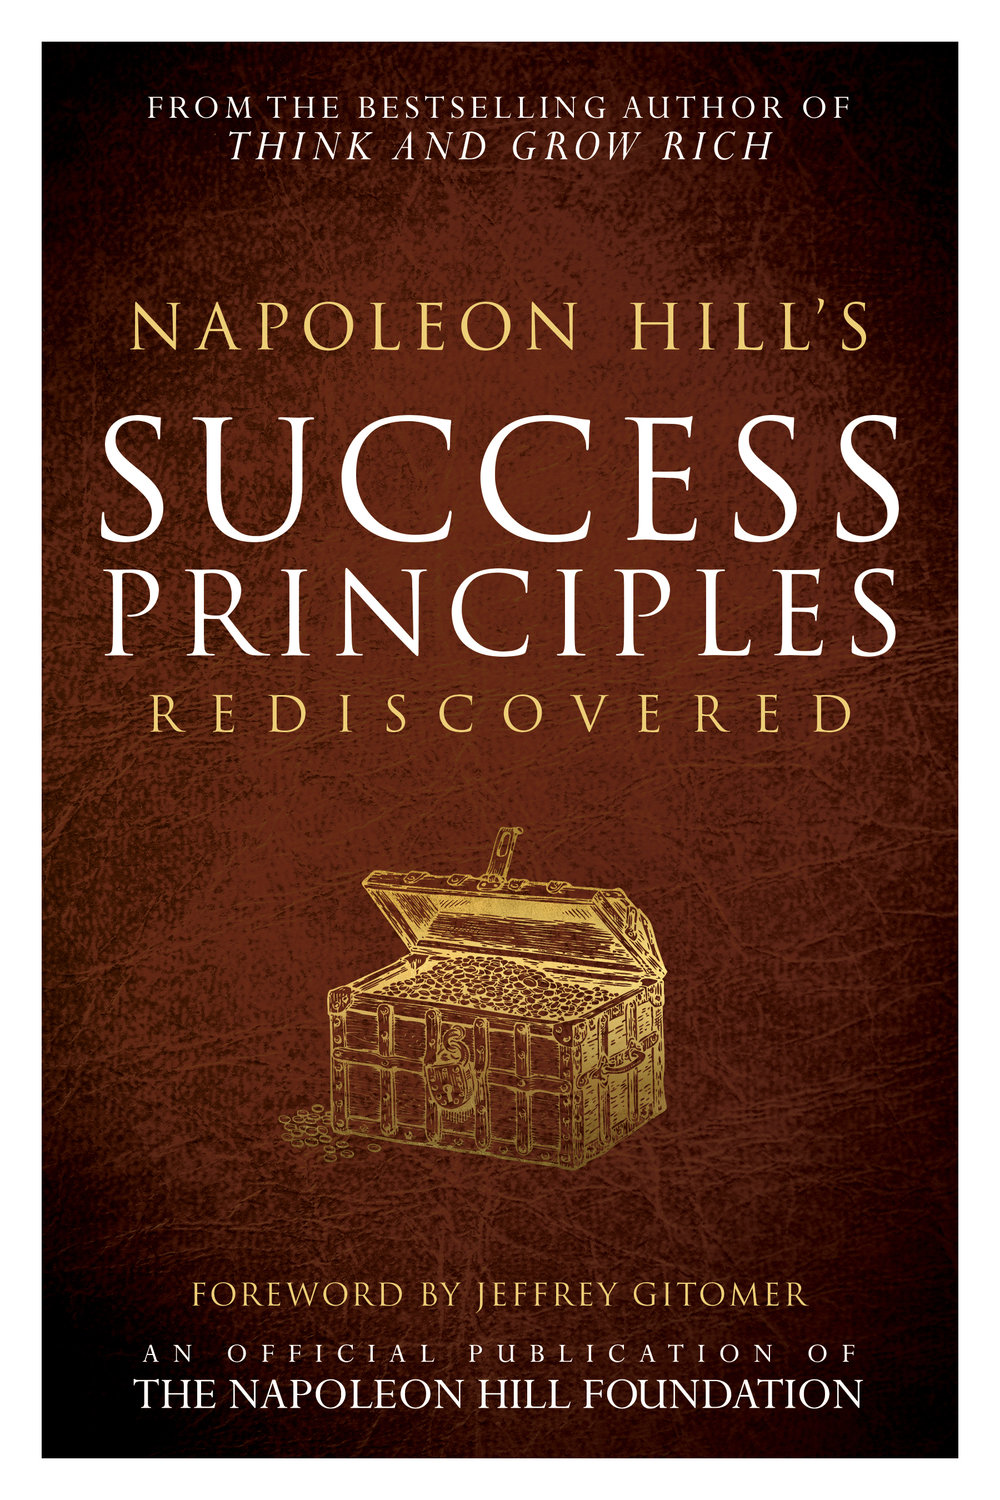 Napoleon_Hill's_Success_Principles_Rediscovered.jpg